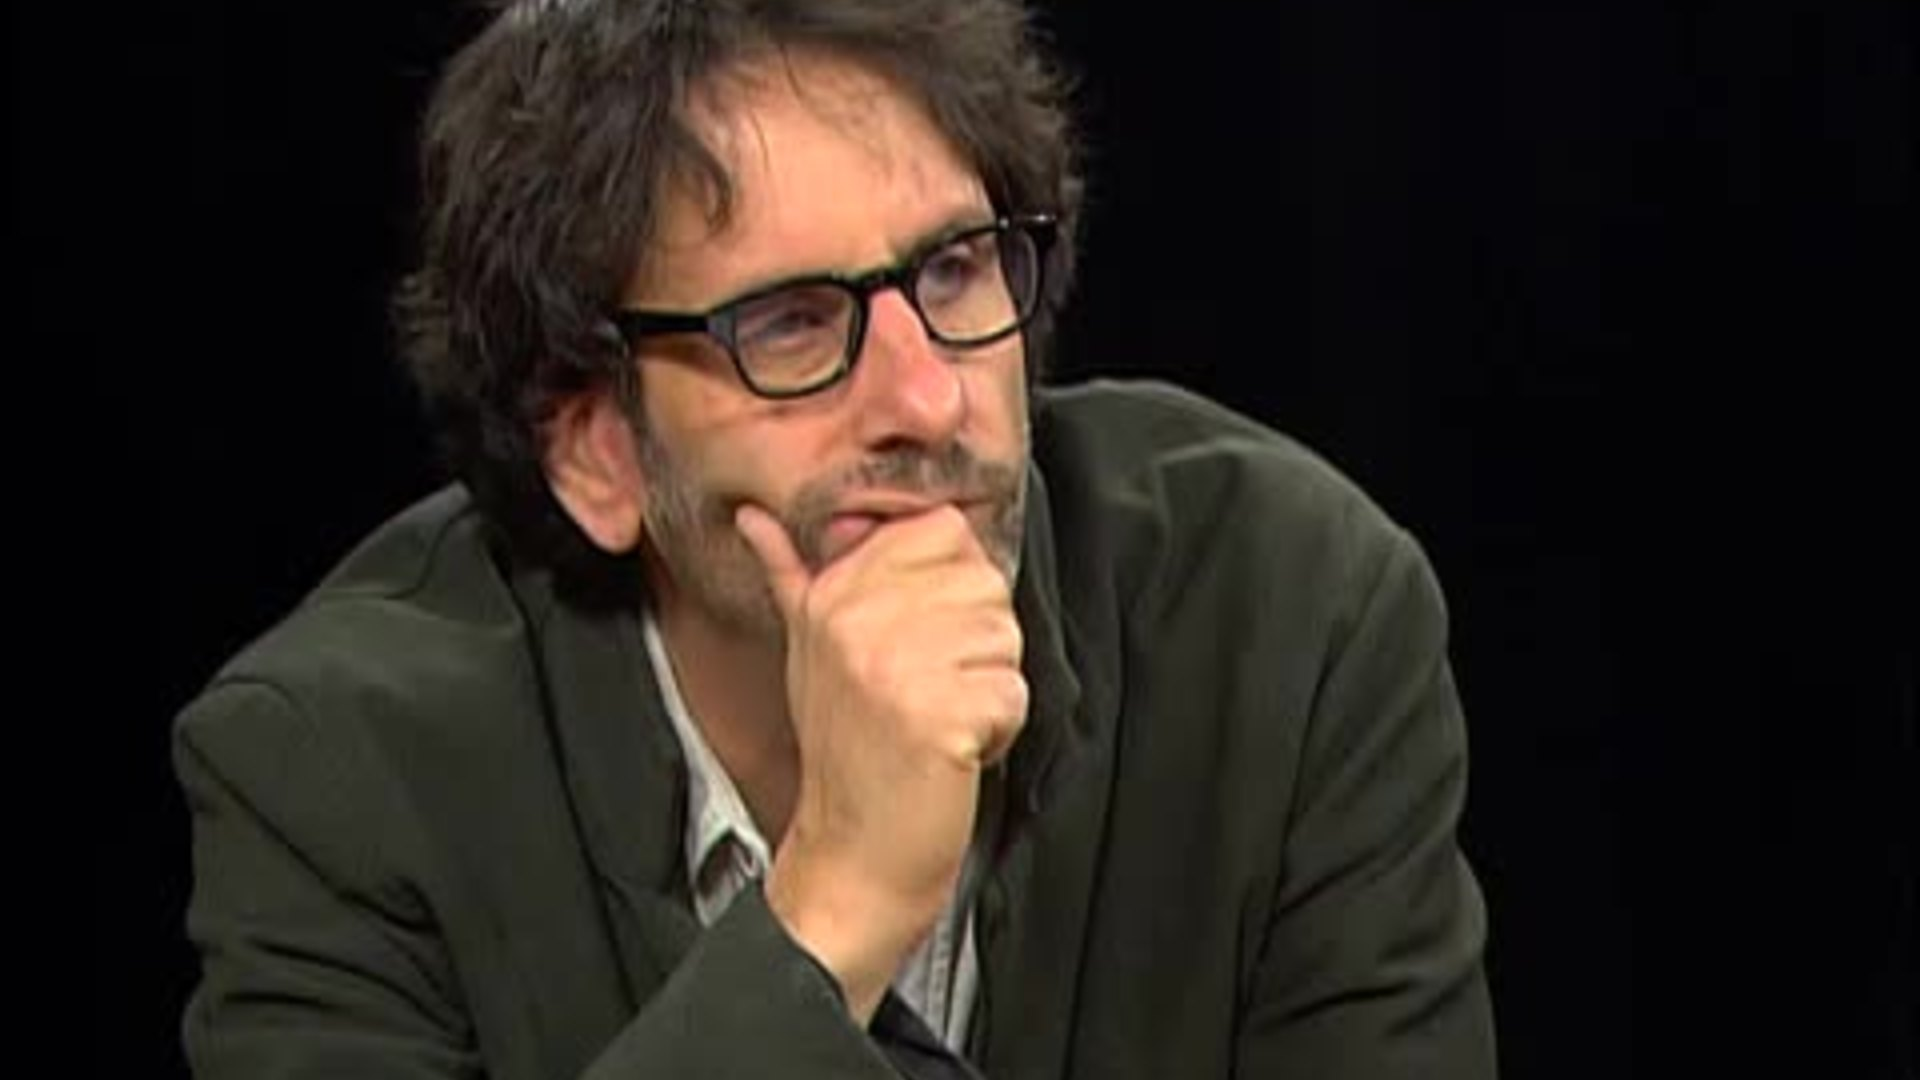 joel coen charlie rose entertainment law scienceair date 10 27 2009 abc news brian ross on his book the madoff chronicles the coen brothers a serious man alison gopnik